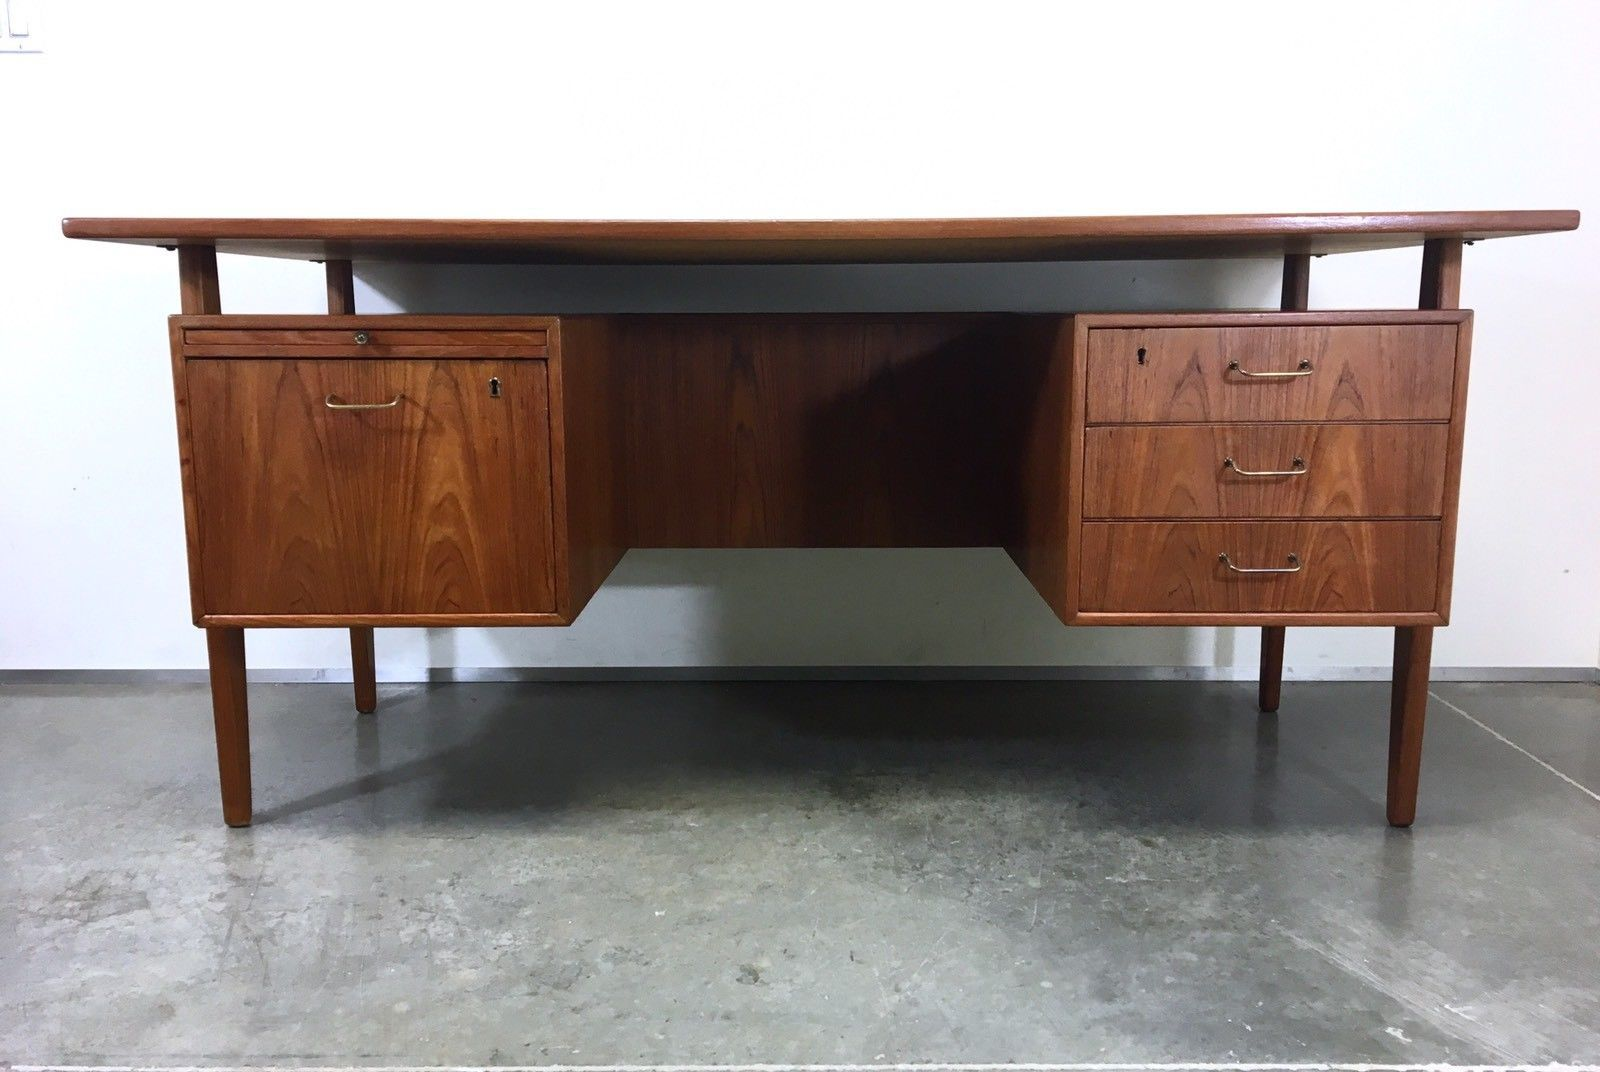 Beautiful Mid Century Modern Floating Danish Teak Executive Desk Has Three Drawers And One File Drawer Mid Century Modern Desk Modern Desk Mid Century Modern